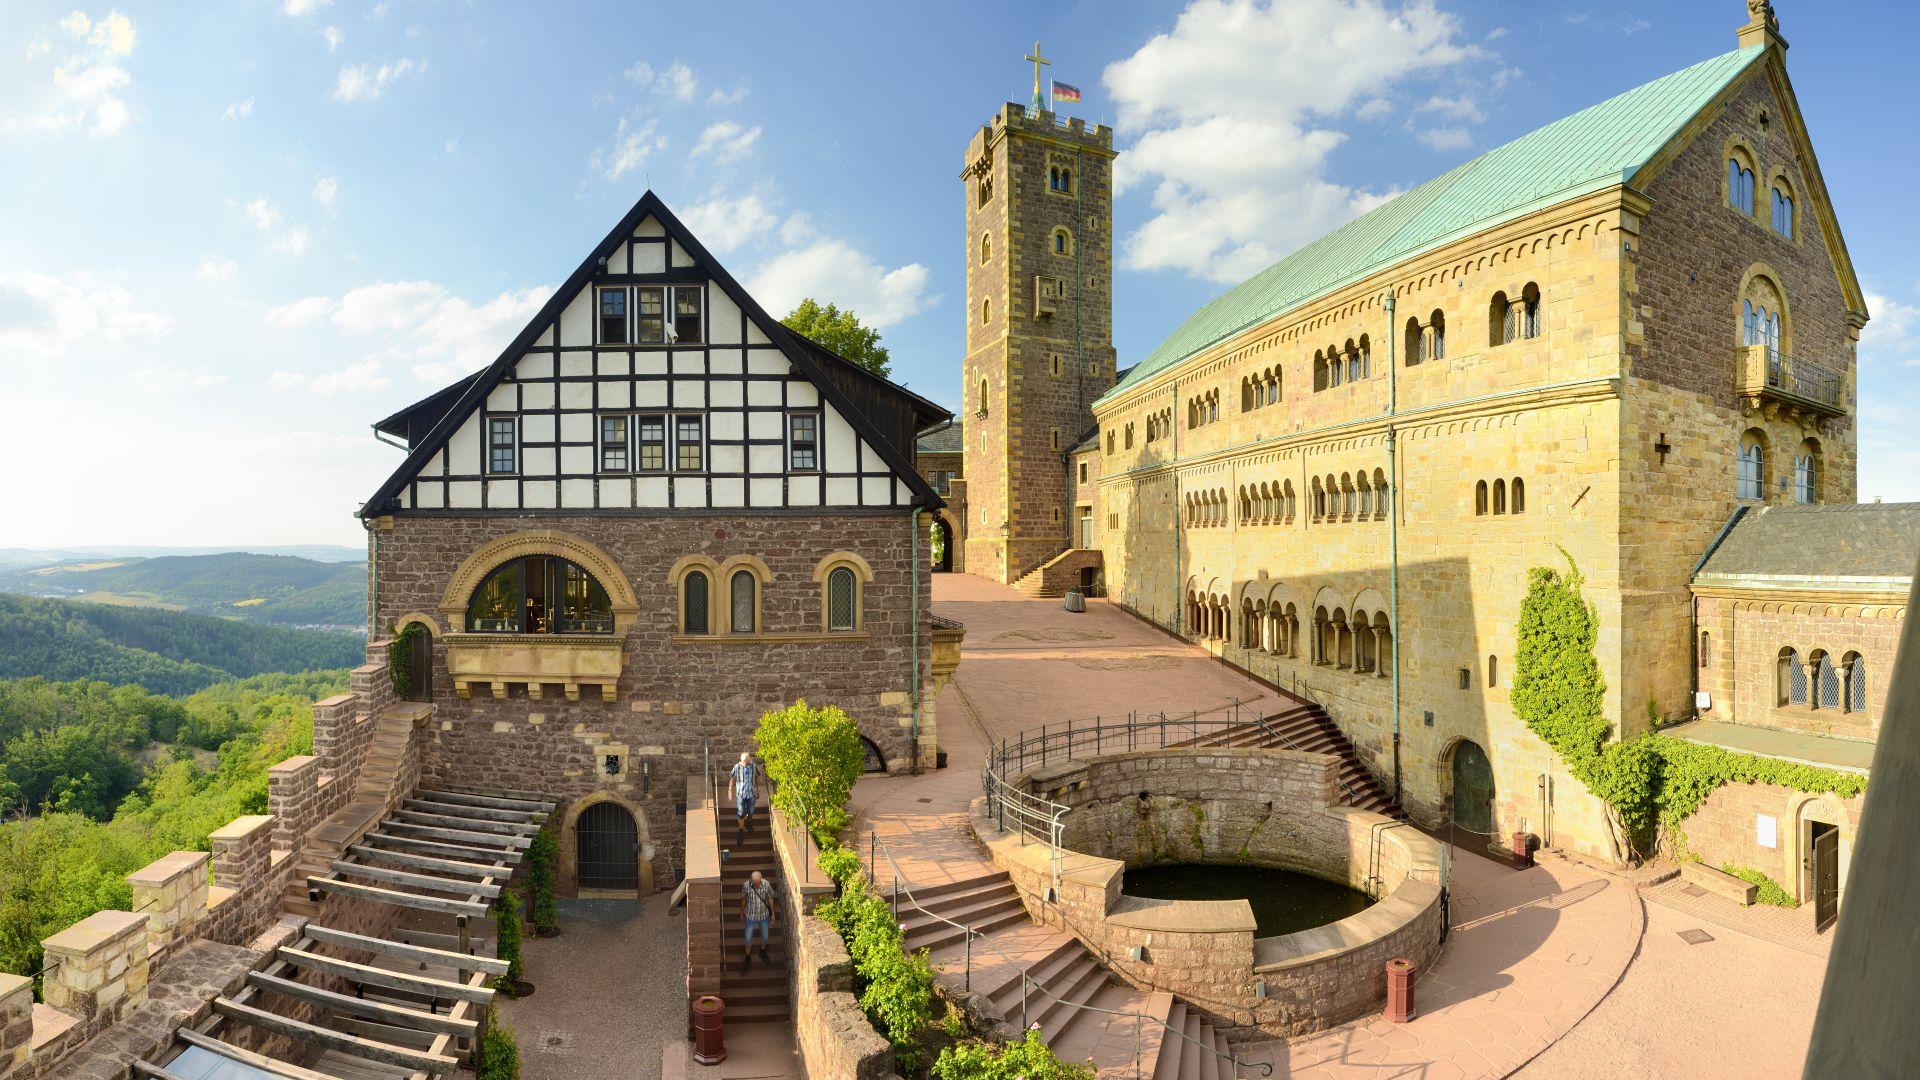 Eisenach: View of the inner courtyard of the Wartburg